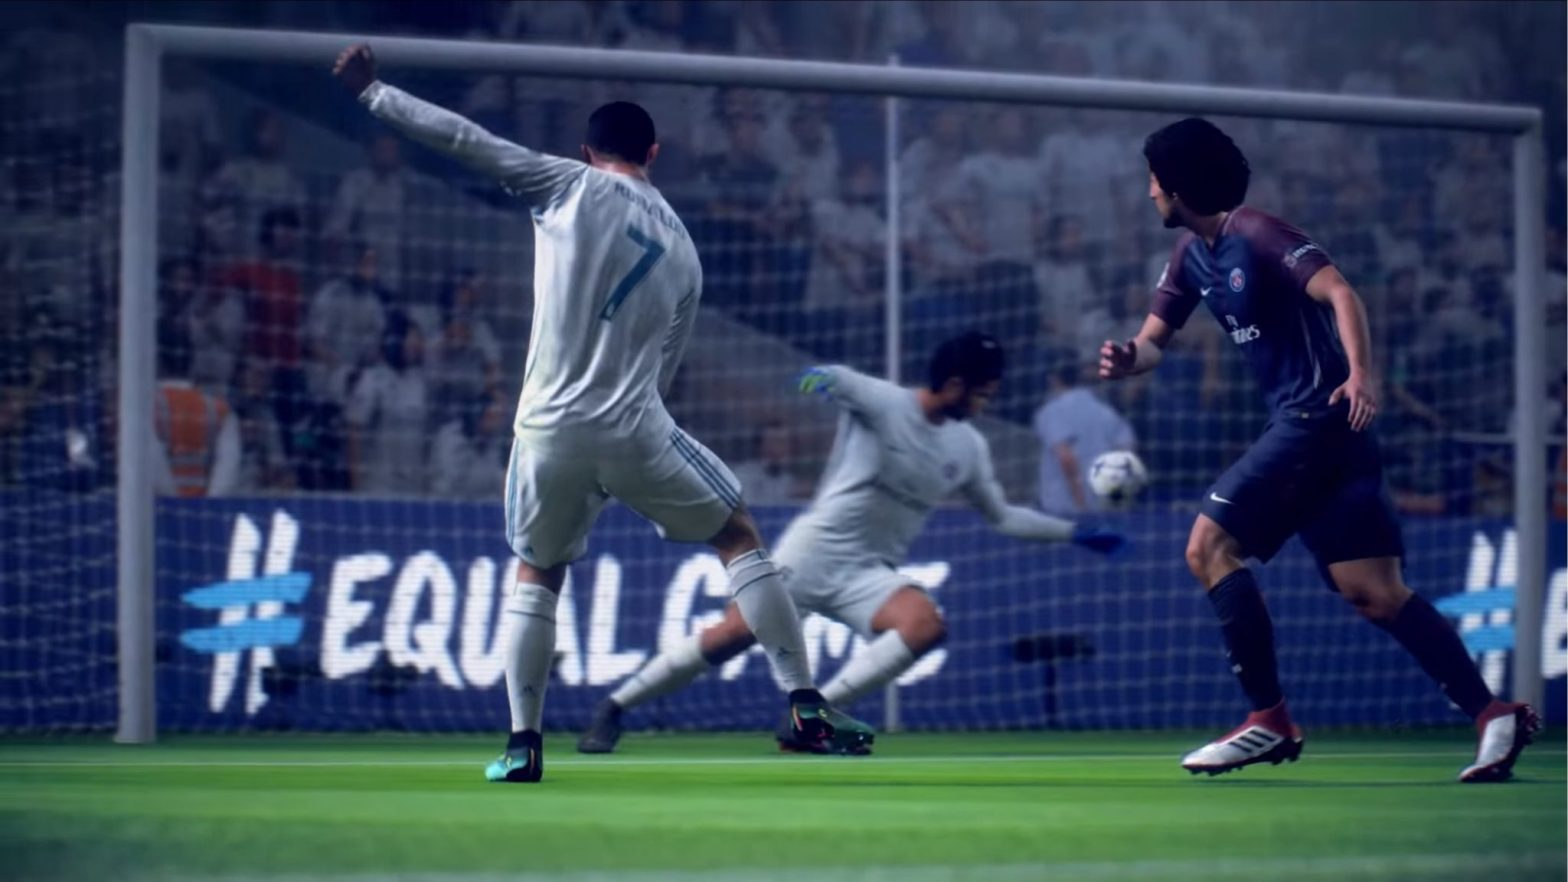 FIFA 19 trailers release date